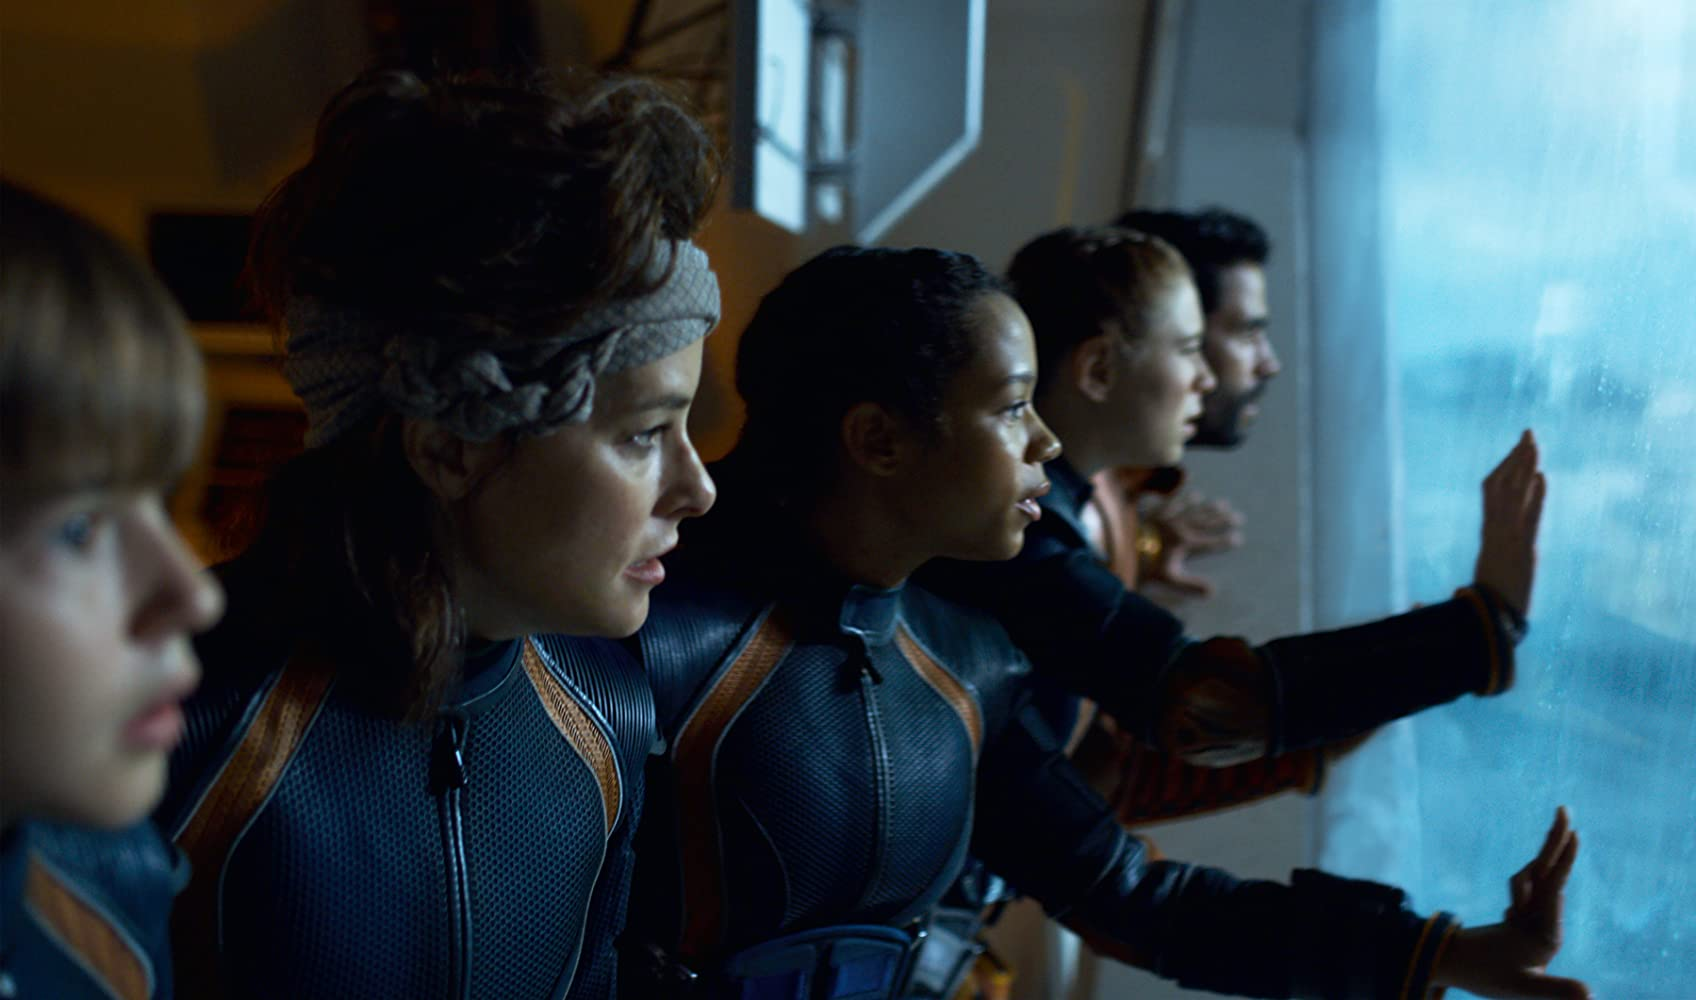 Parker Posey, Ignacio Serricchio, Maxwell Jenkins, Mina Sundwall, and Taylor Russell in Lost in Space (2018)